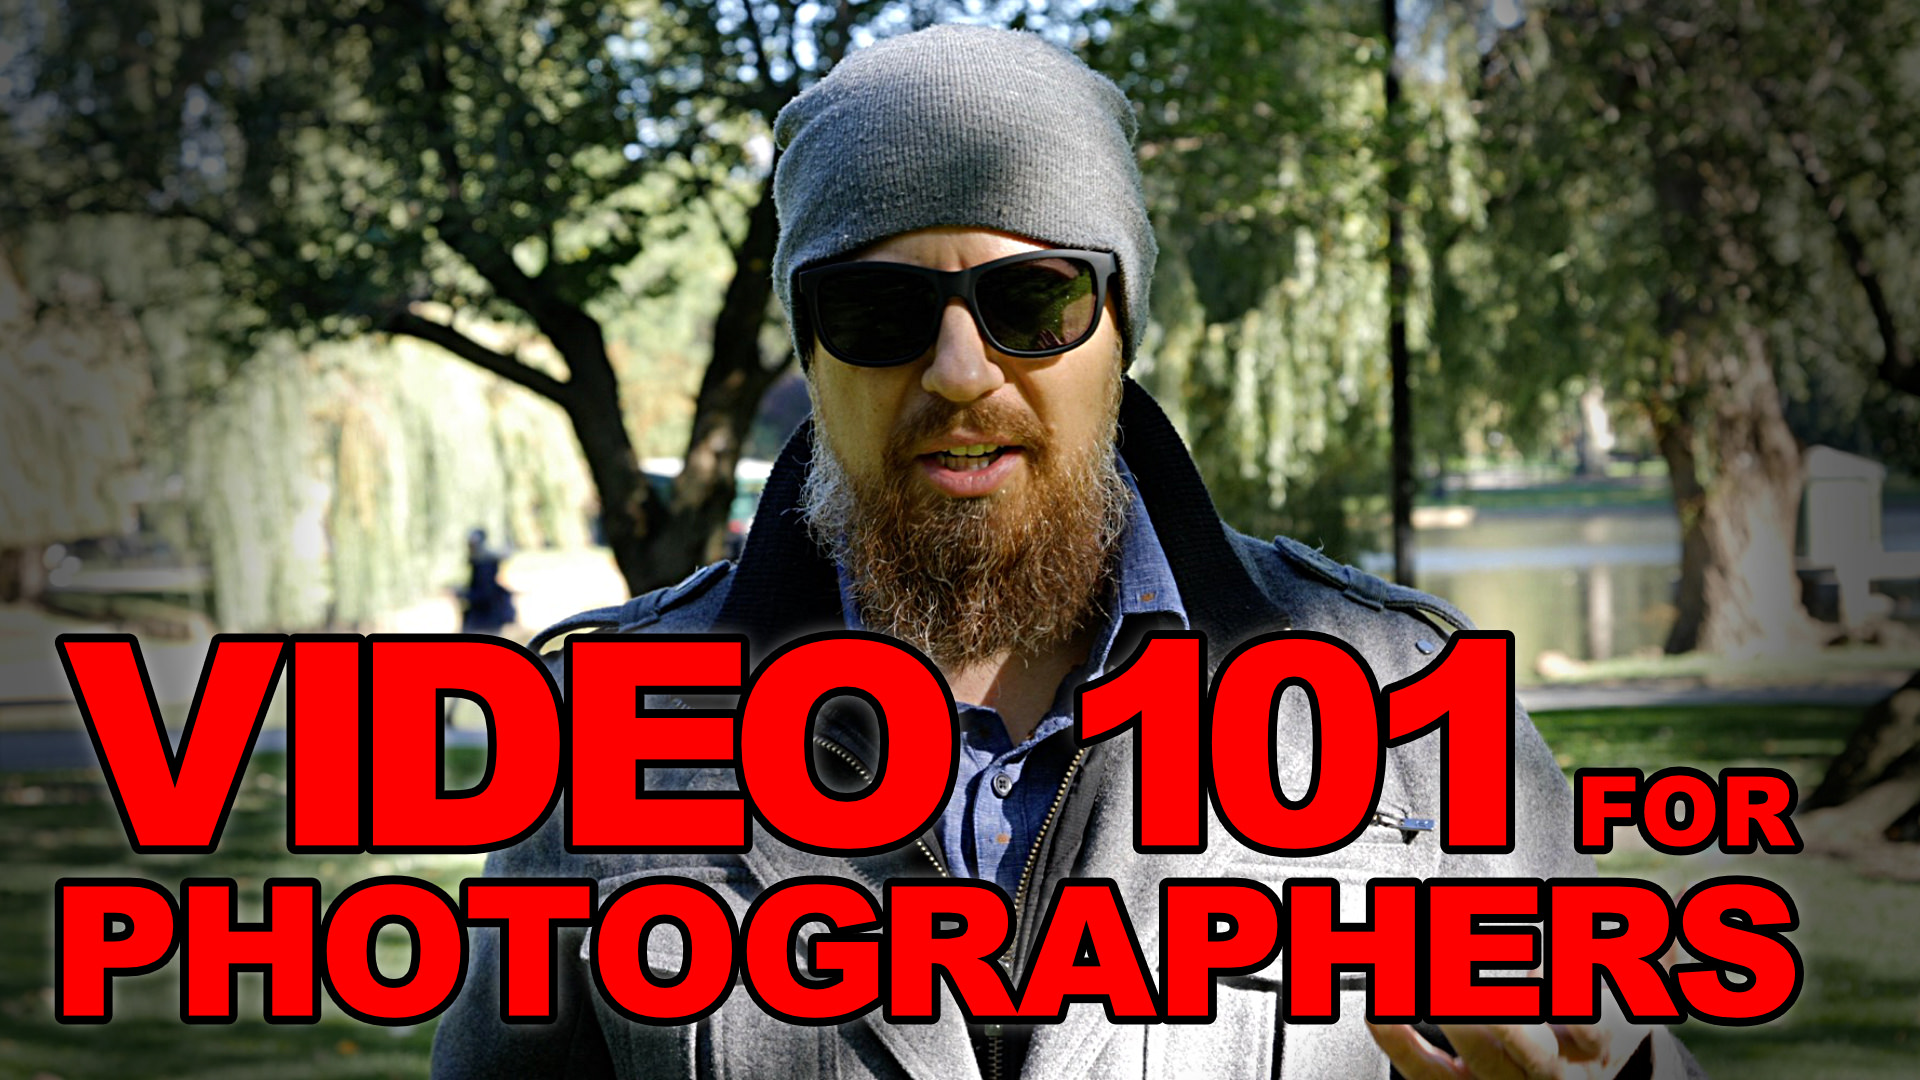 Getting Started with Video, for Photographers